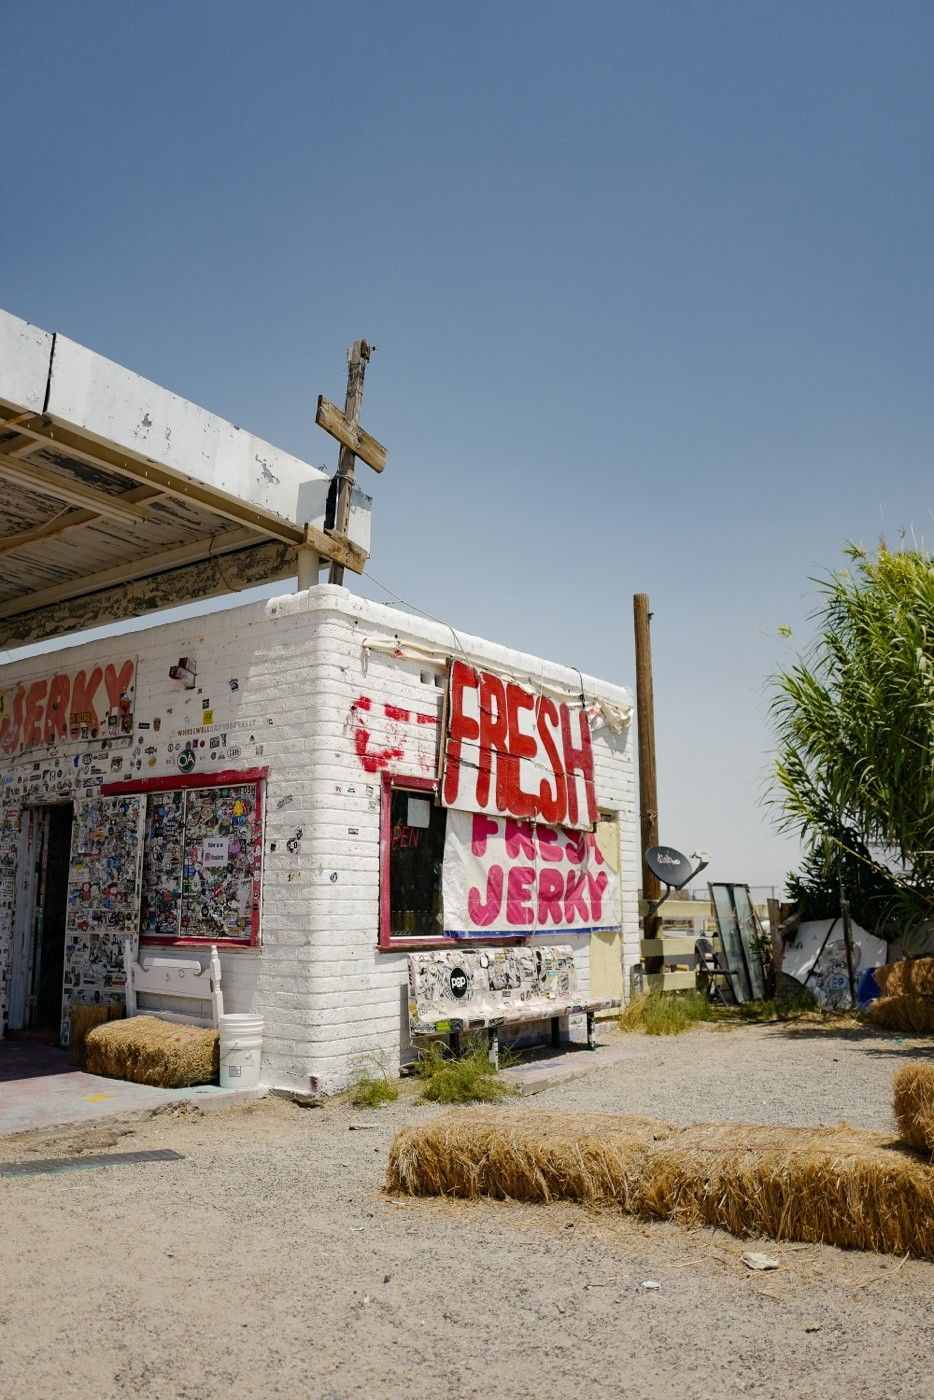 Road trip Rule #1. If the jerky place looks sketchy, the jerky is going to be amazing.